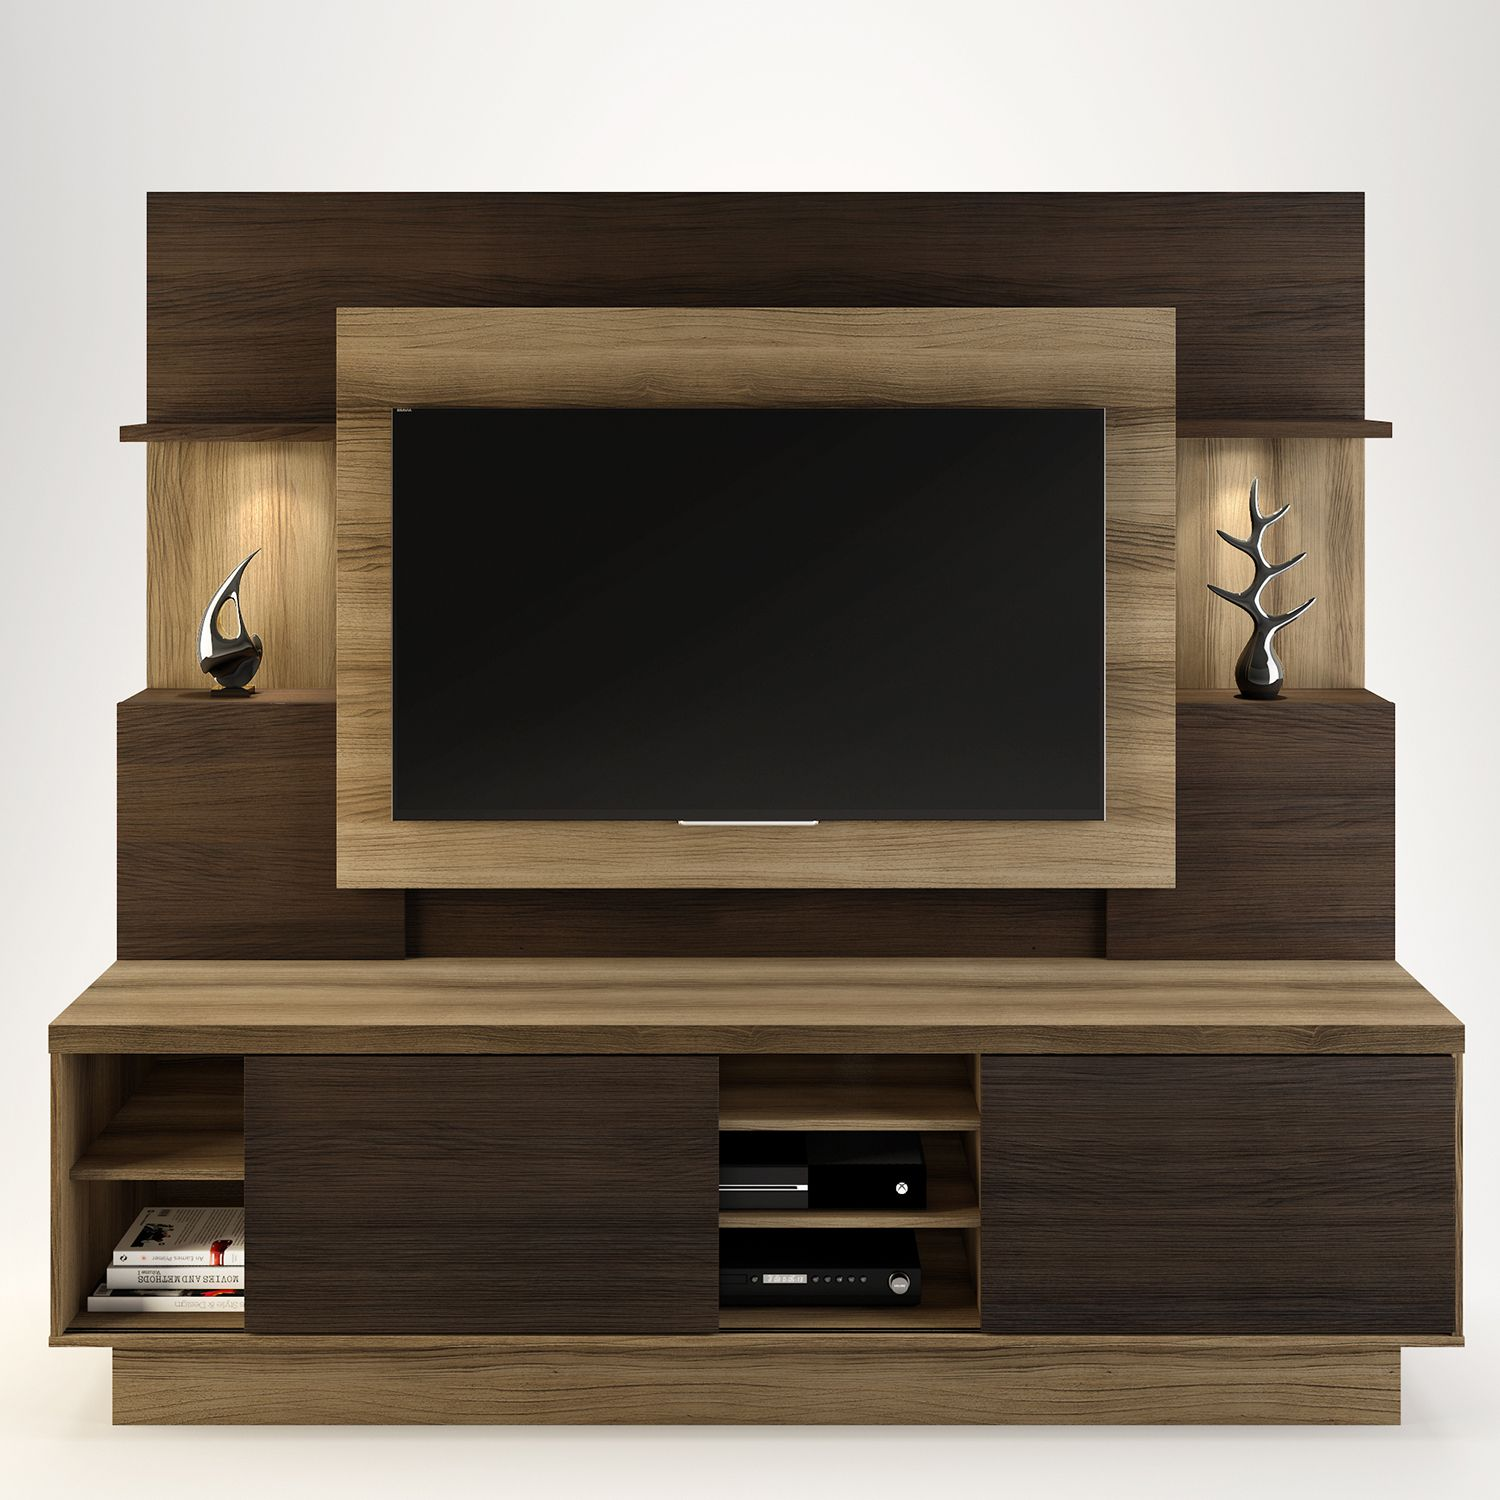 Estante para Home Theater Aron L nea Brasil Capuccino Wood bano